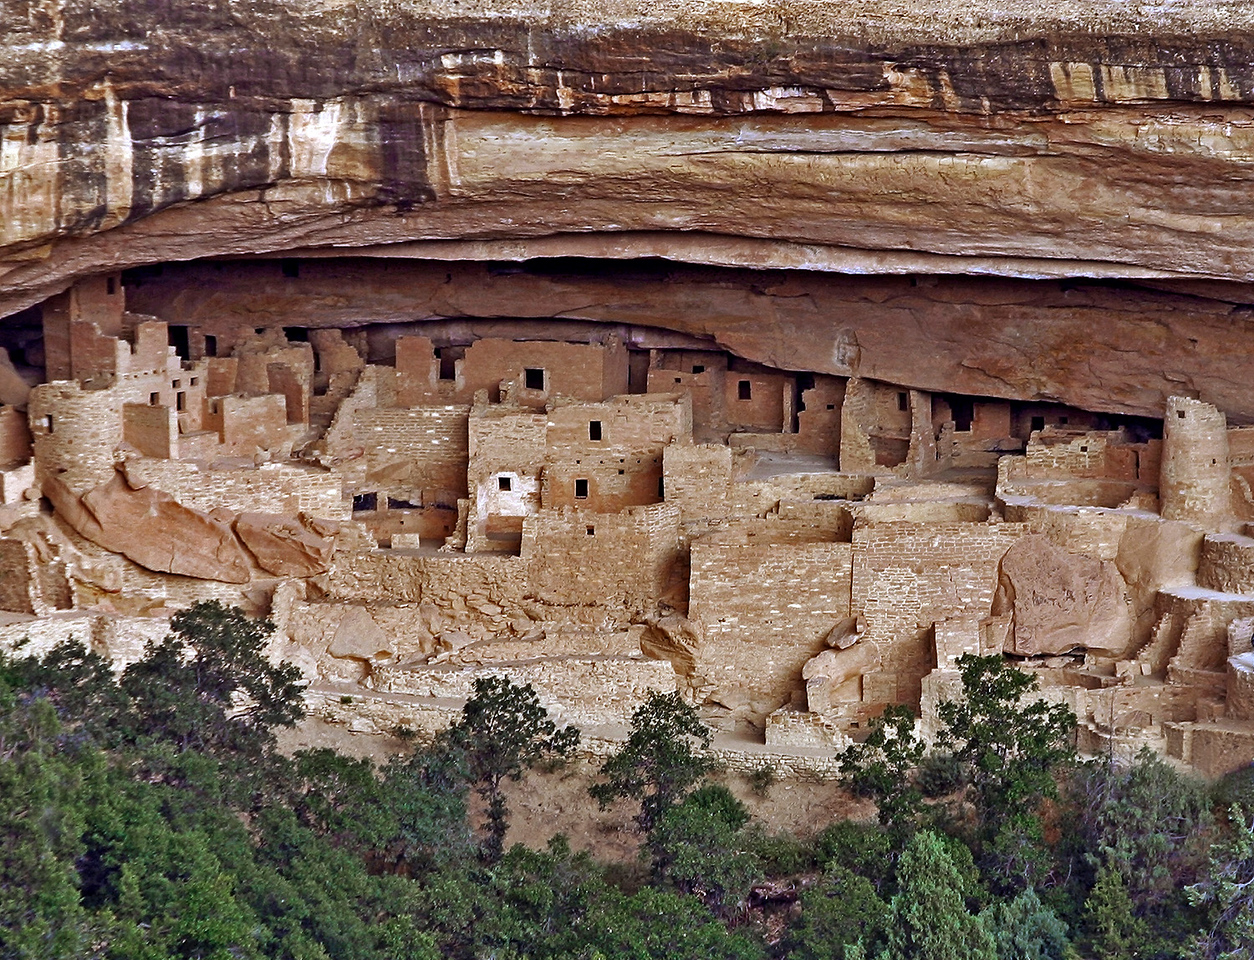 This much restored cliff dwelling, known as Cliff Palace, had more than 150 rooms.